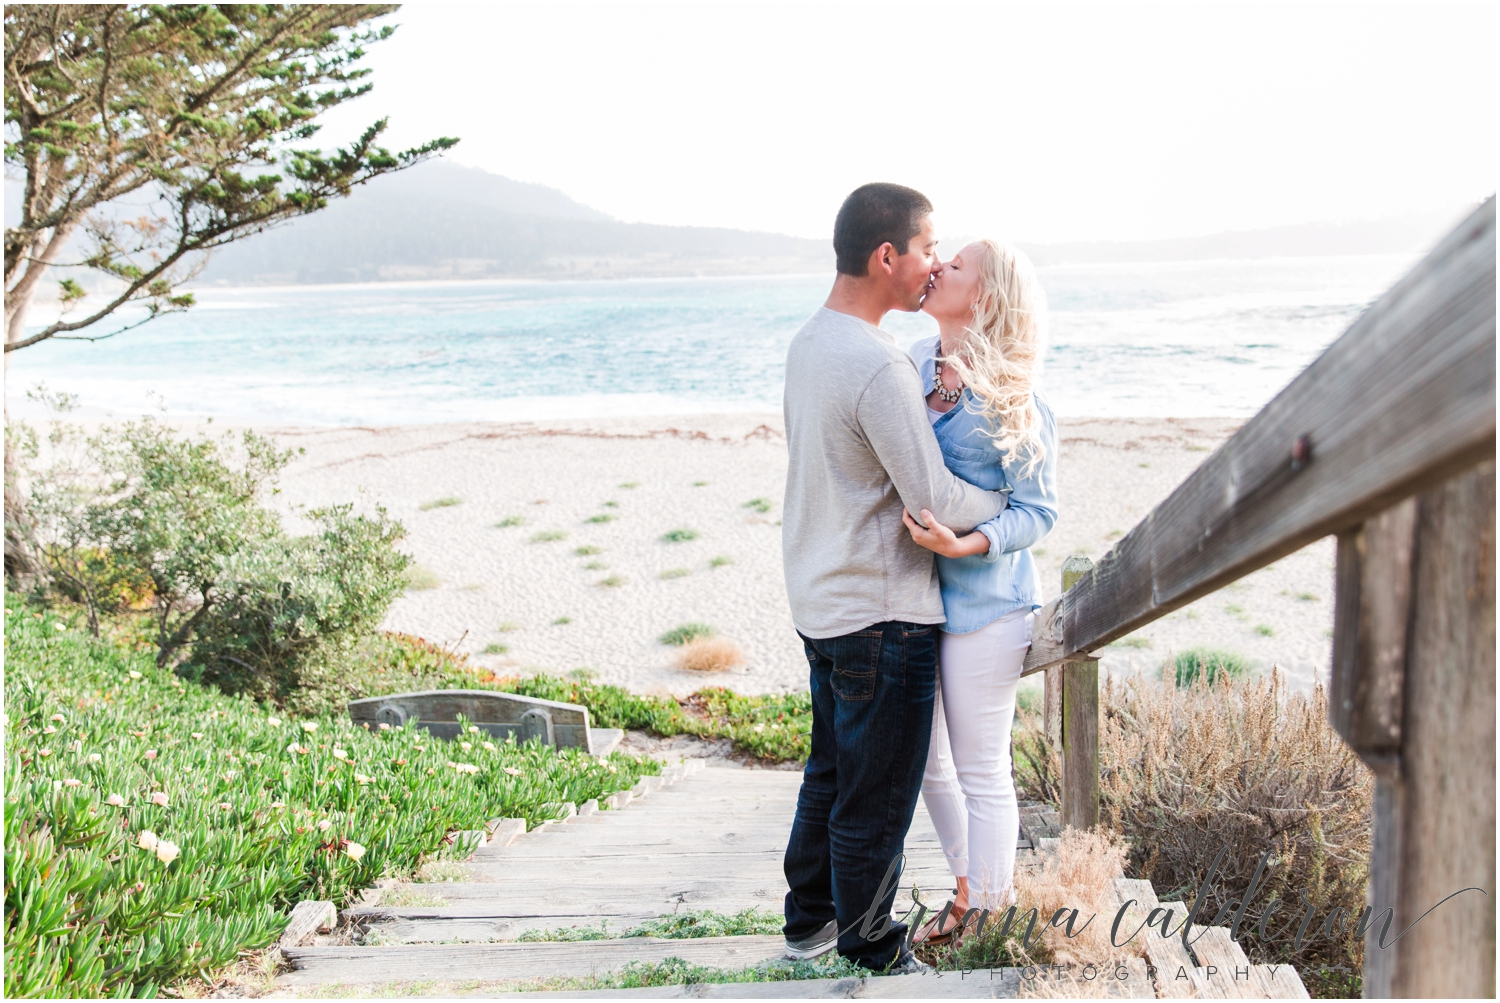 Carmel beach engagement pictures by Briana Calderon Photography_1147.jpg